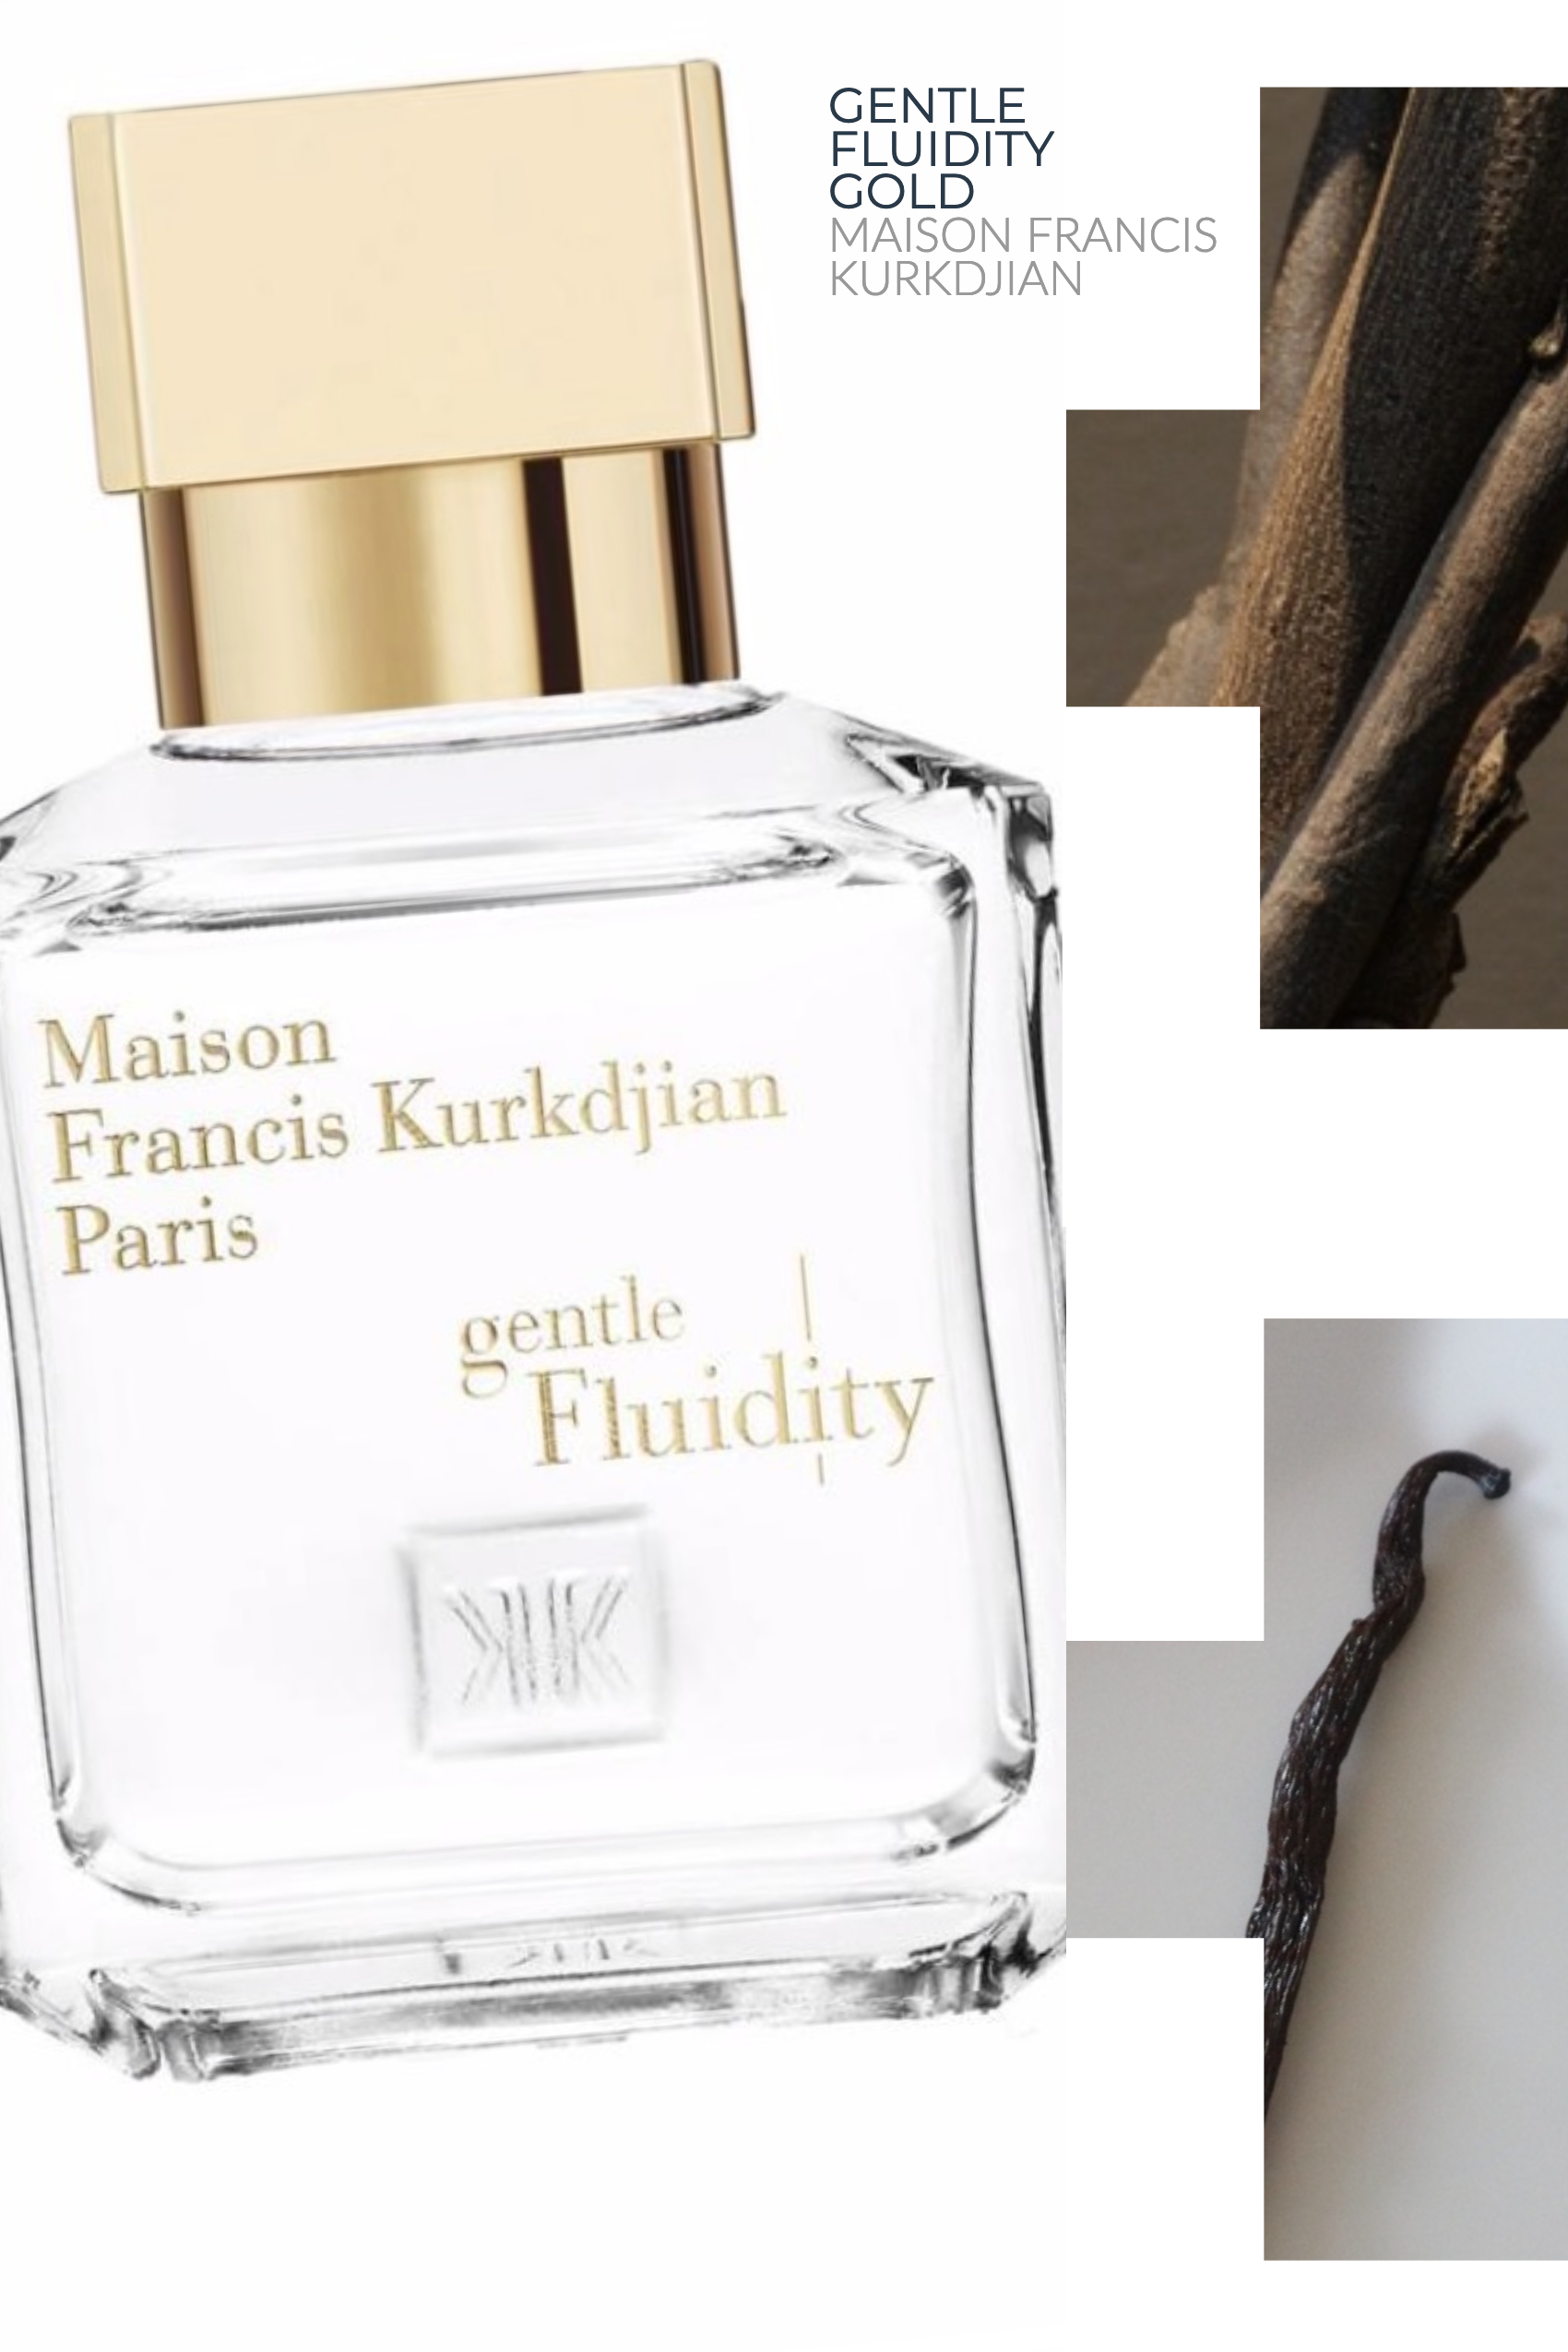 7 Unisex Perfumes, Gentle Fluidity Gold, Maison Francis Kurkdjian, cause and yvette